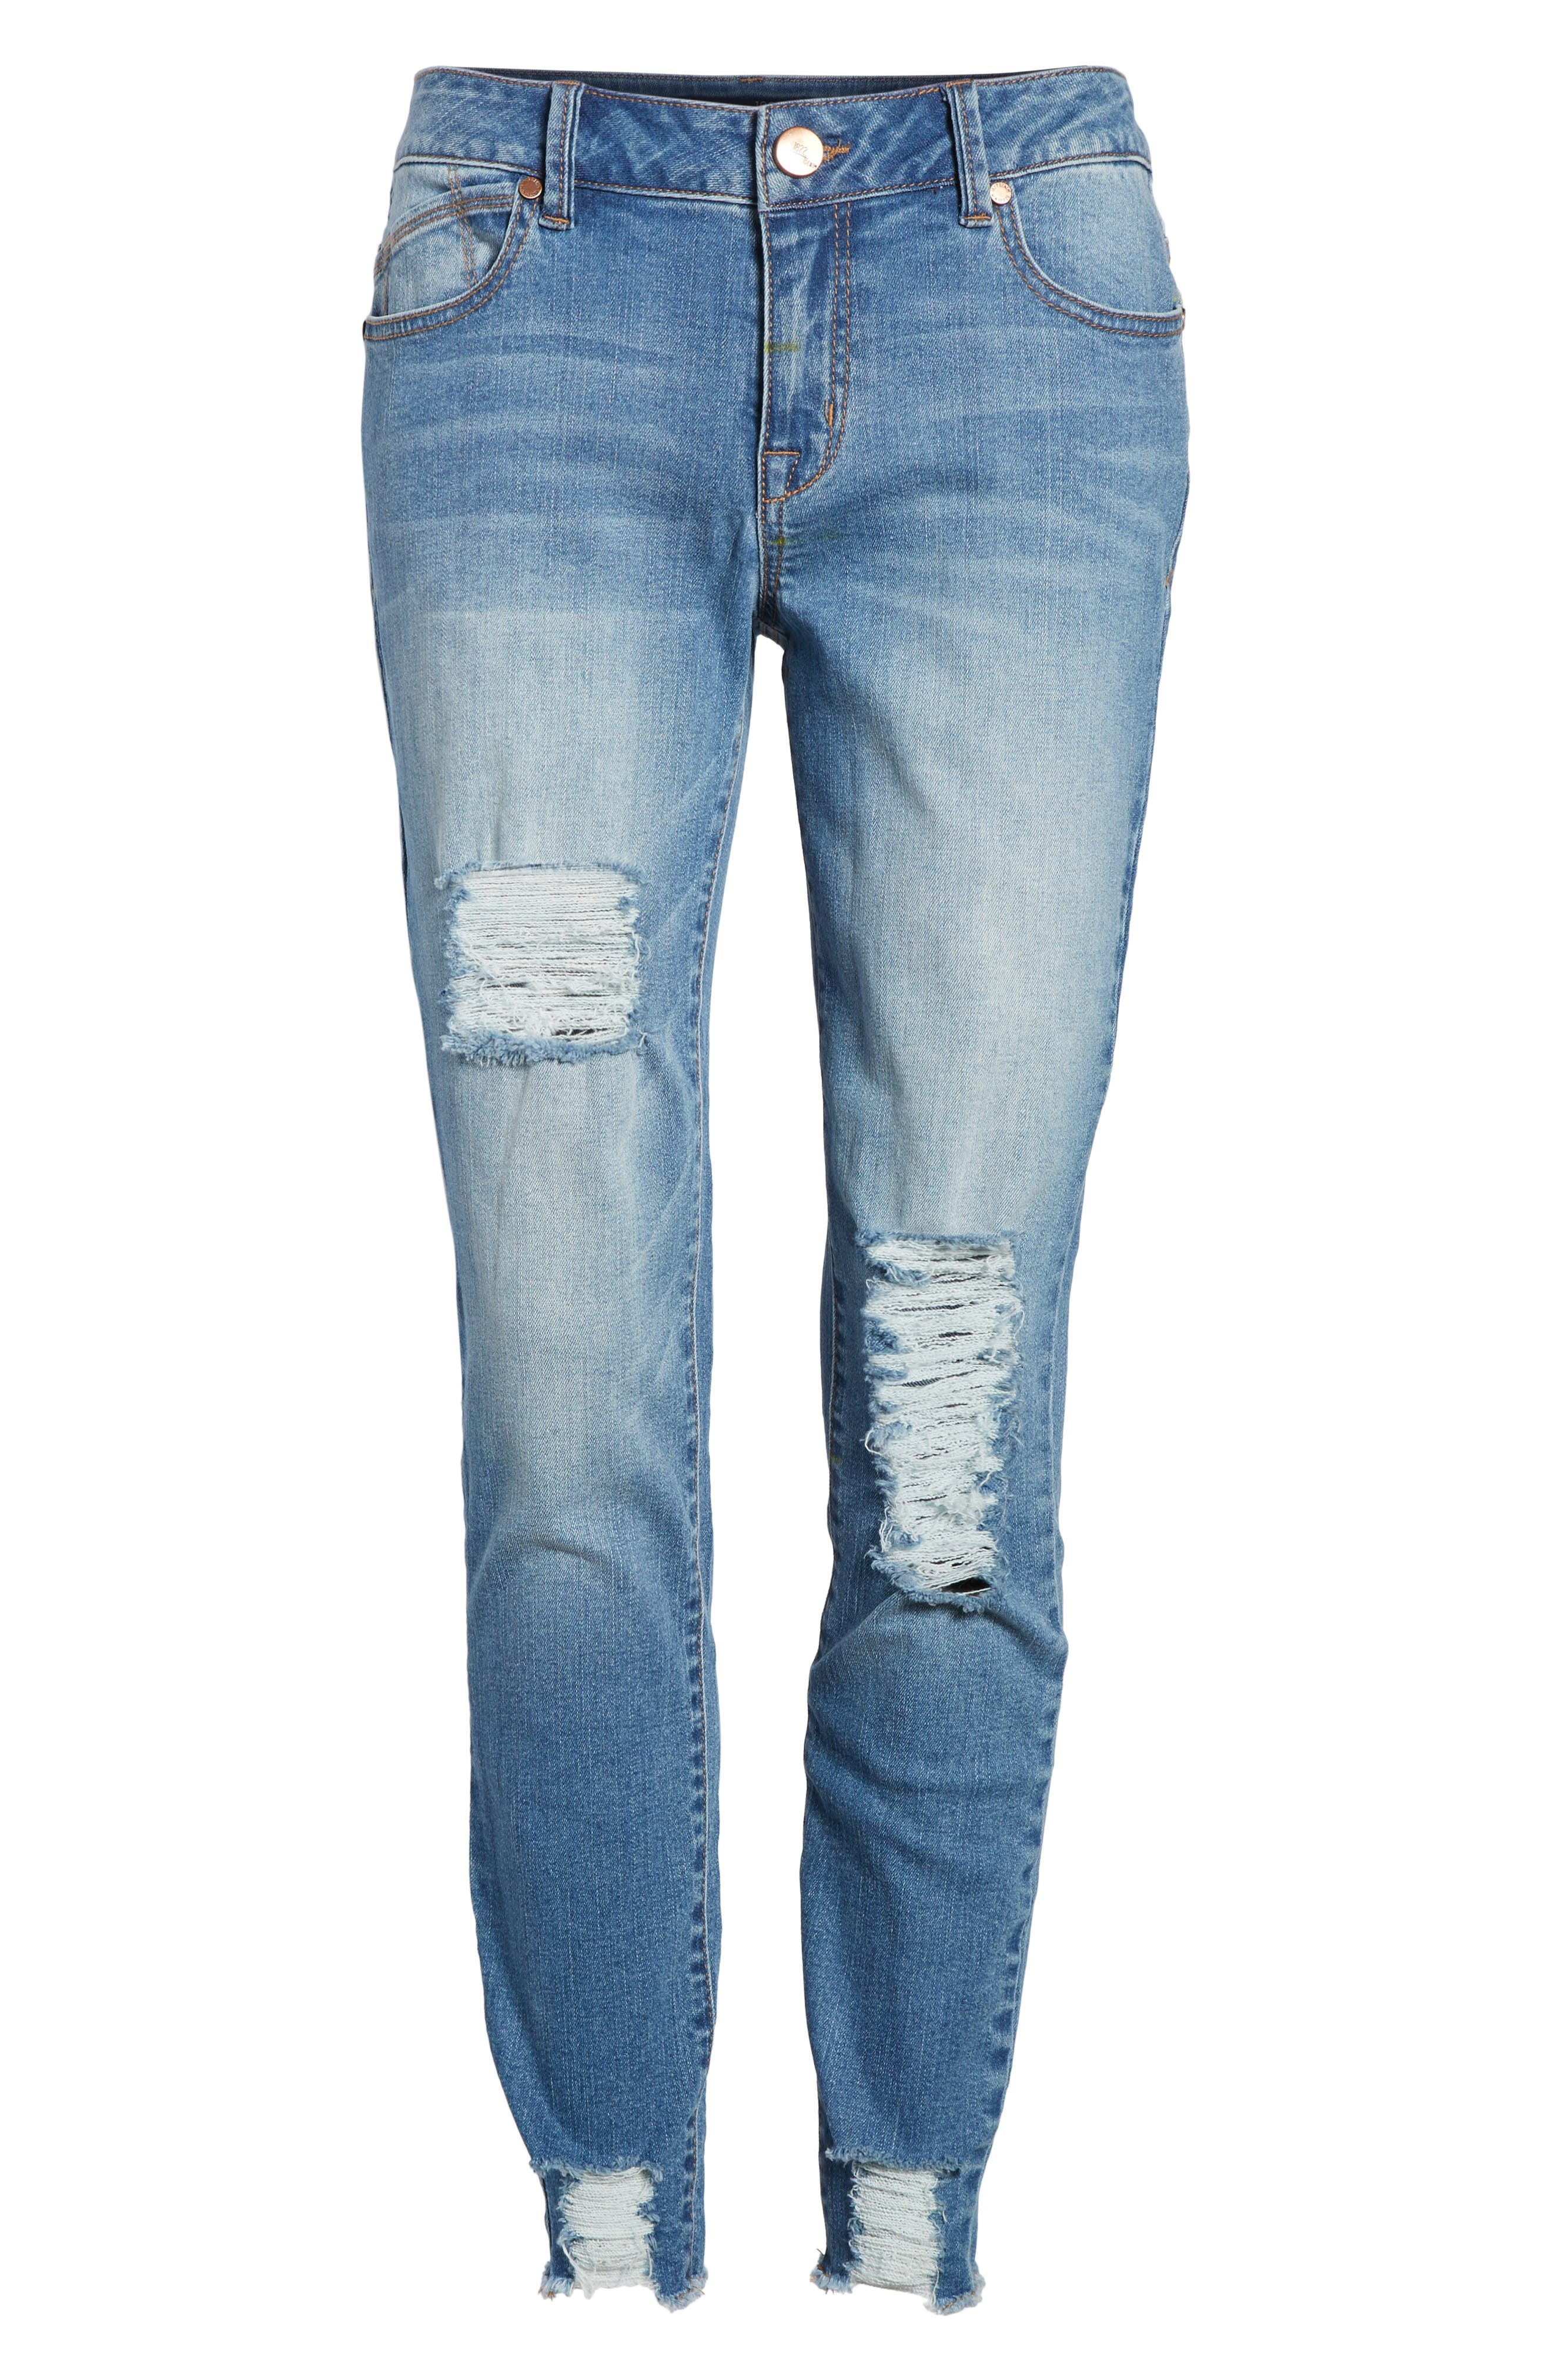 Decon Ripped Skinny Jeans,                             Alternate thumbnail 7, color,                             426